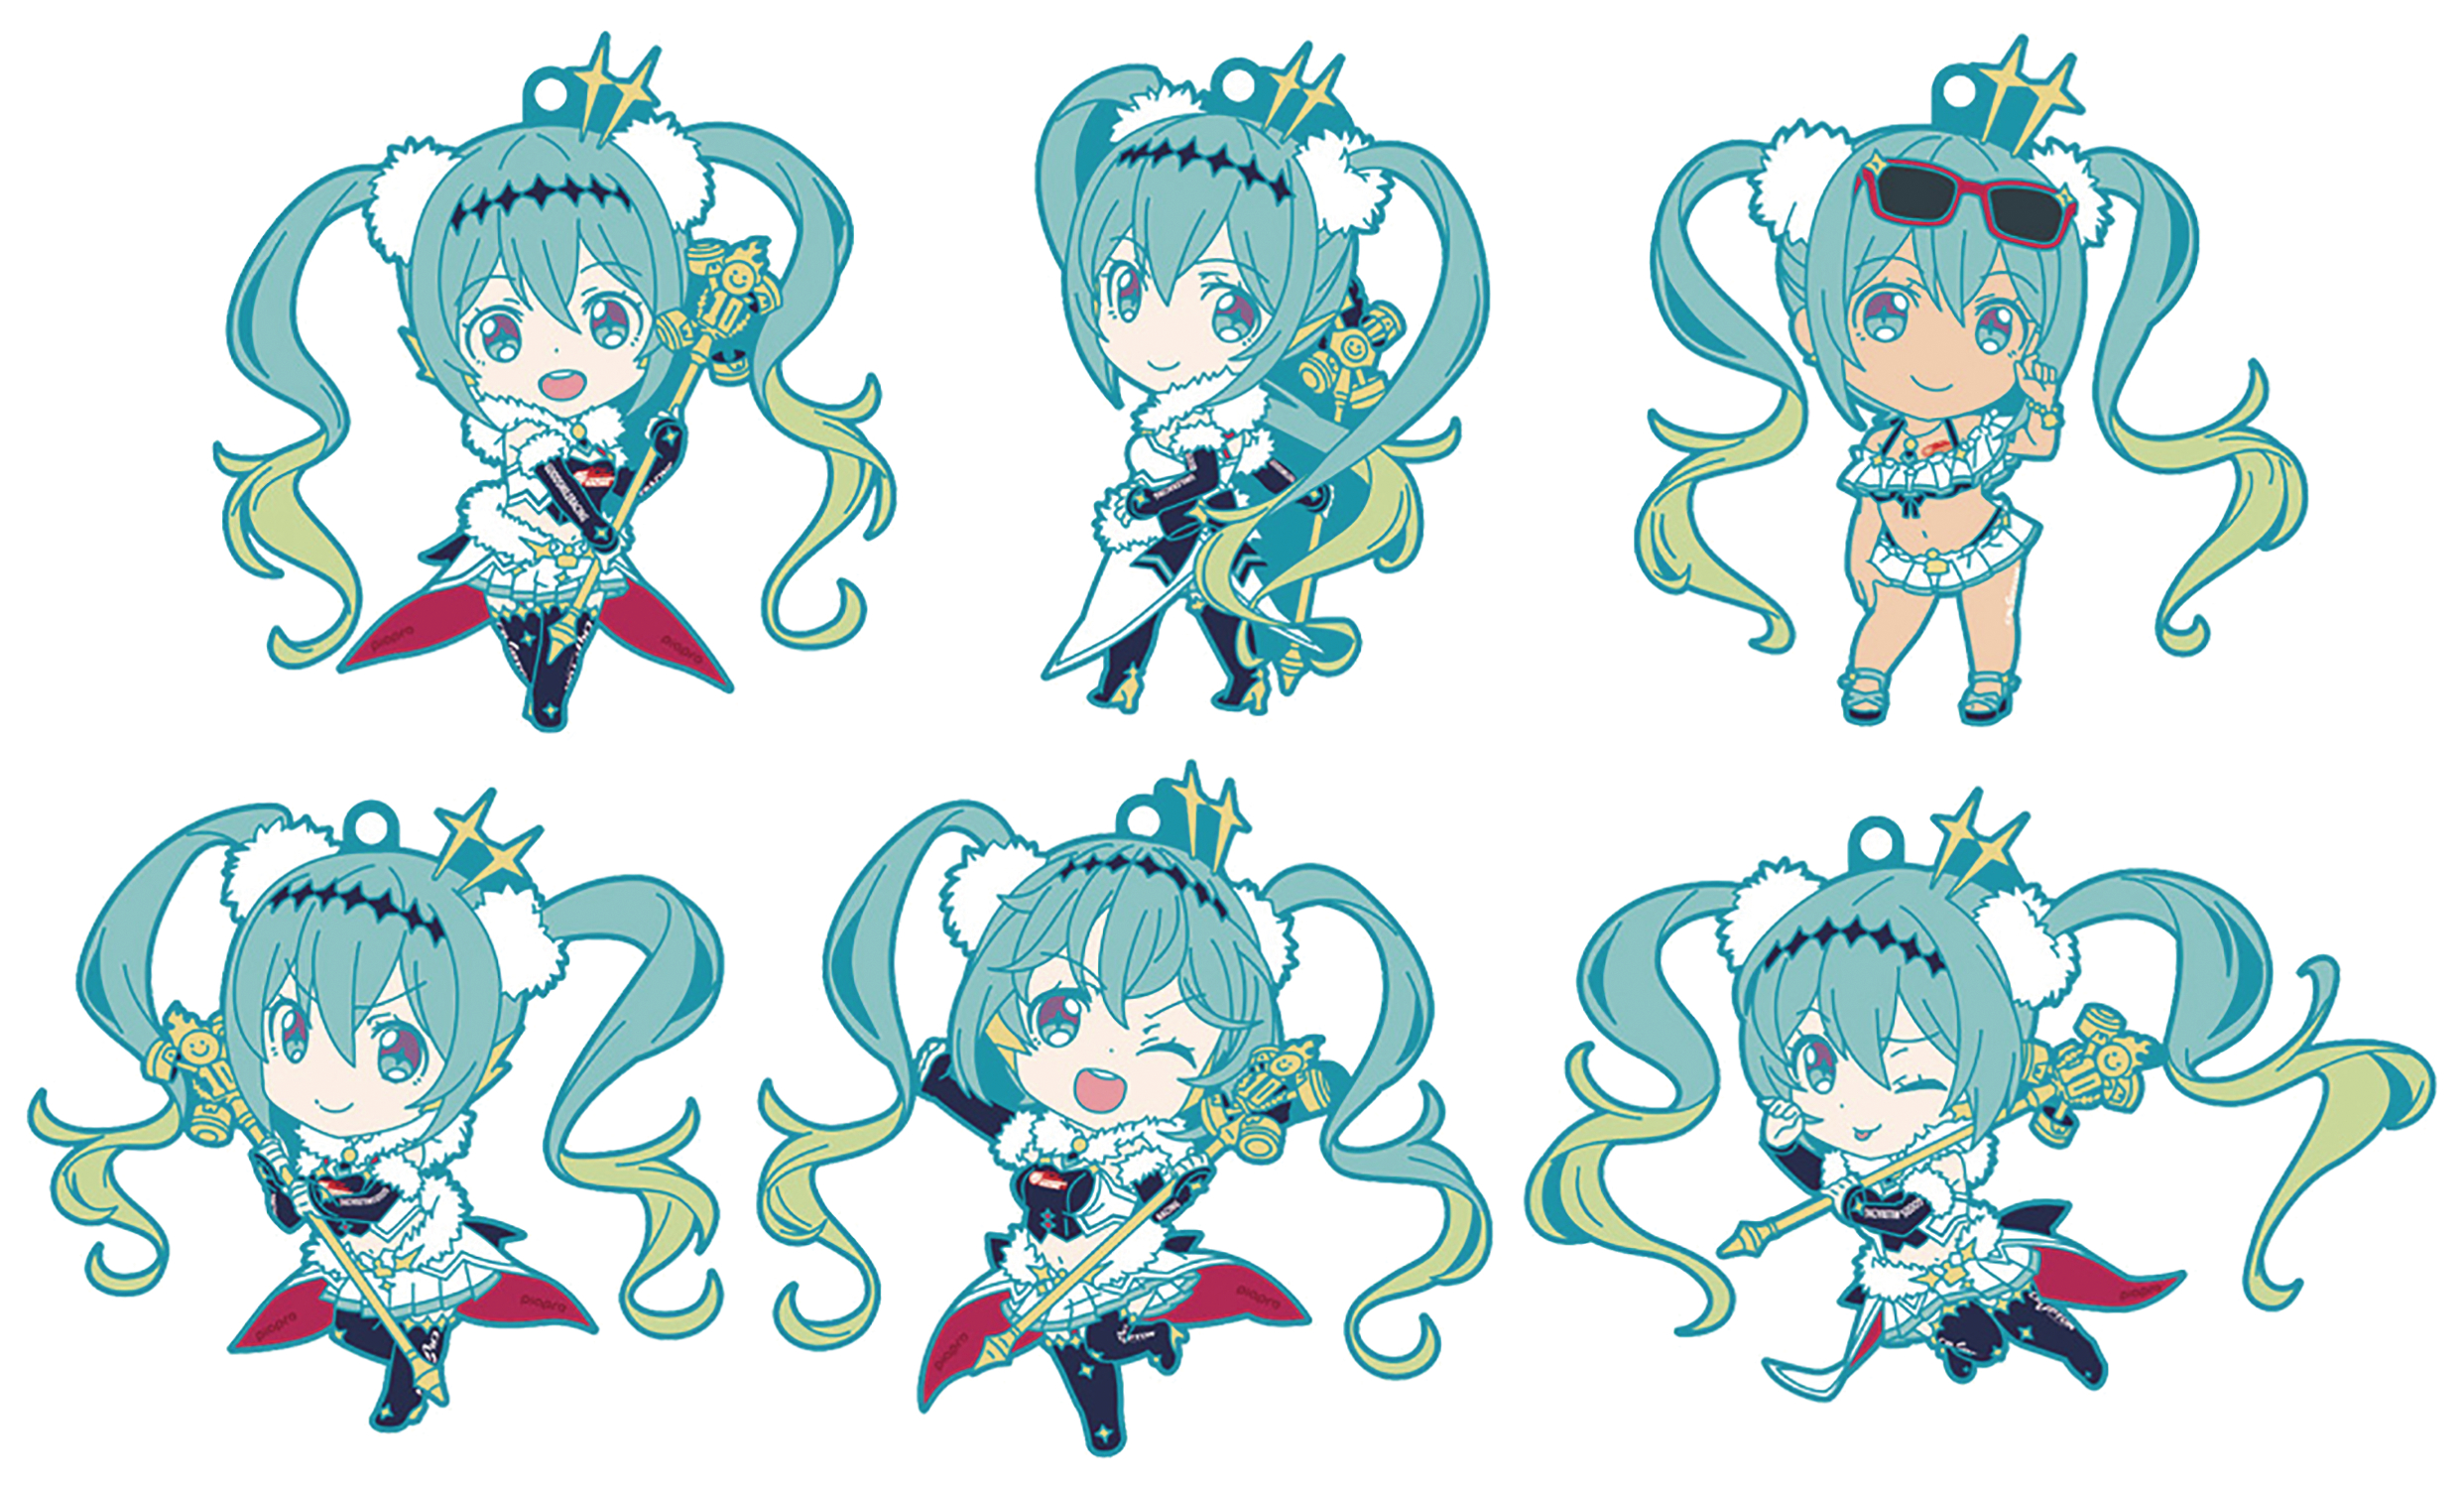 RACING MIKU 2018 NENDOROID PLUS RUBBER KEYCHAIN 6PC BMB DS (